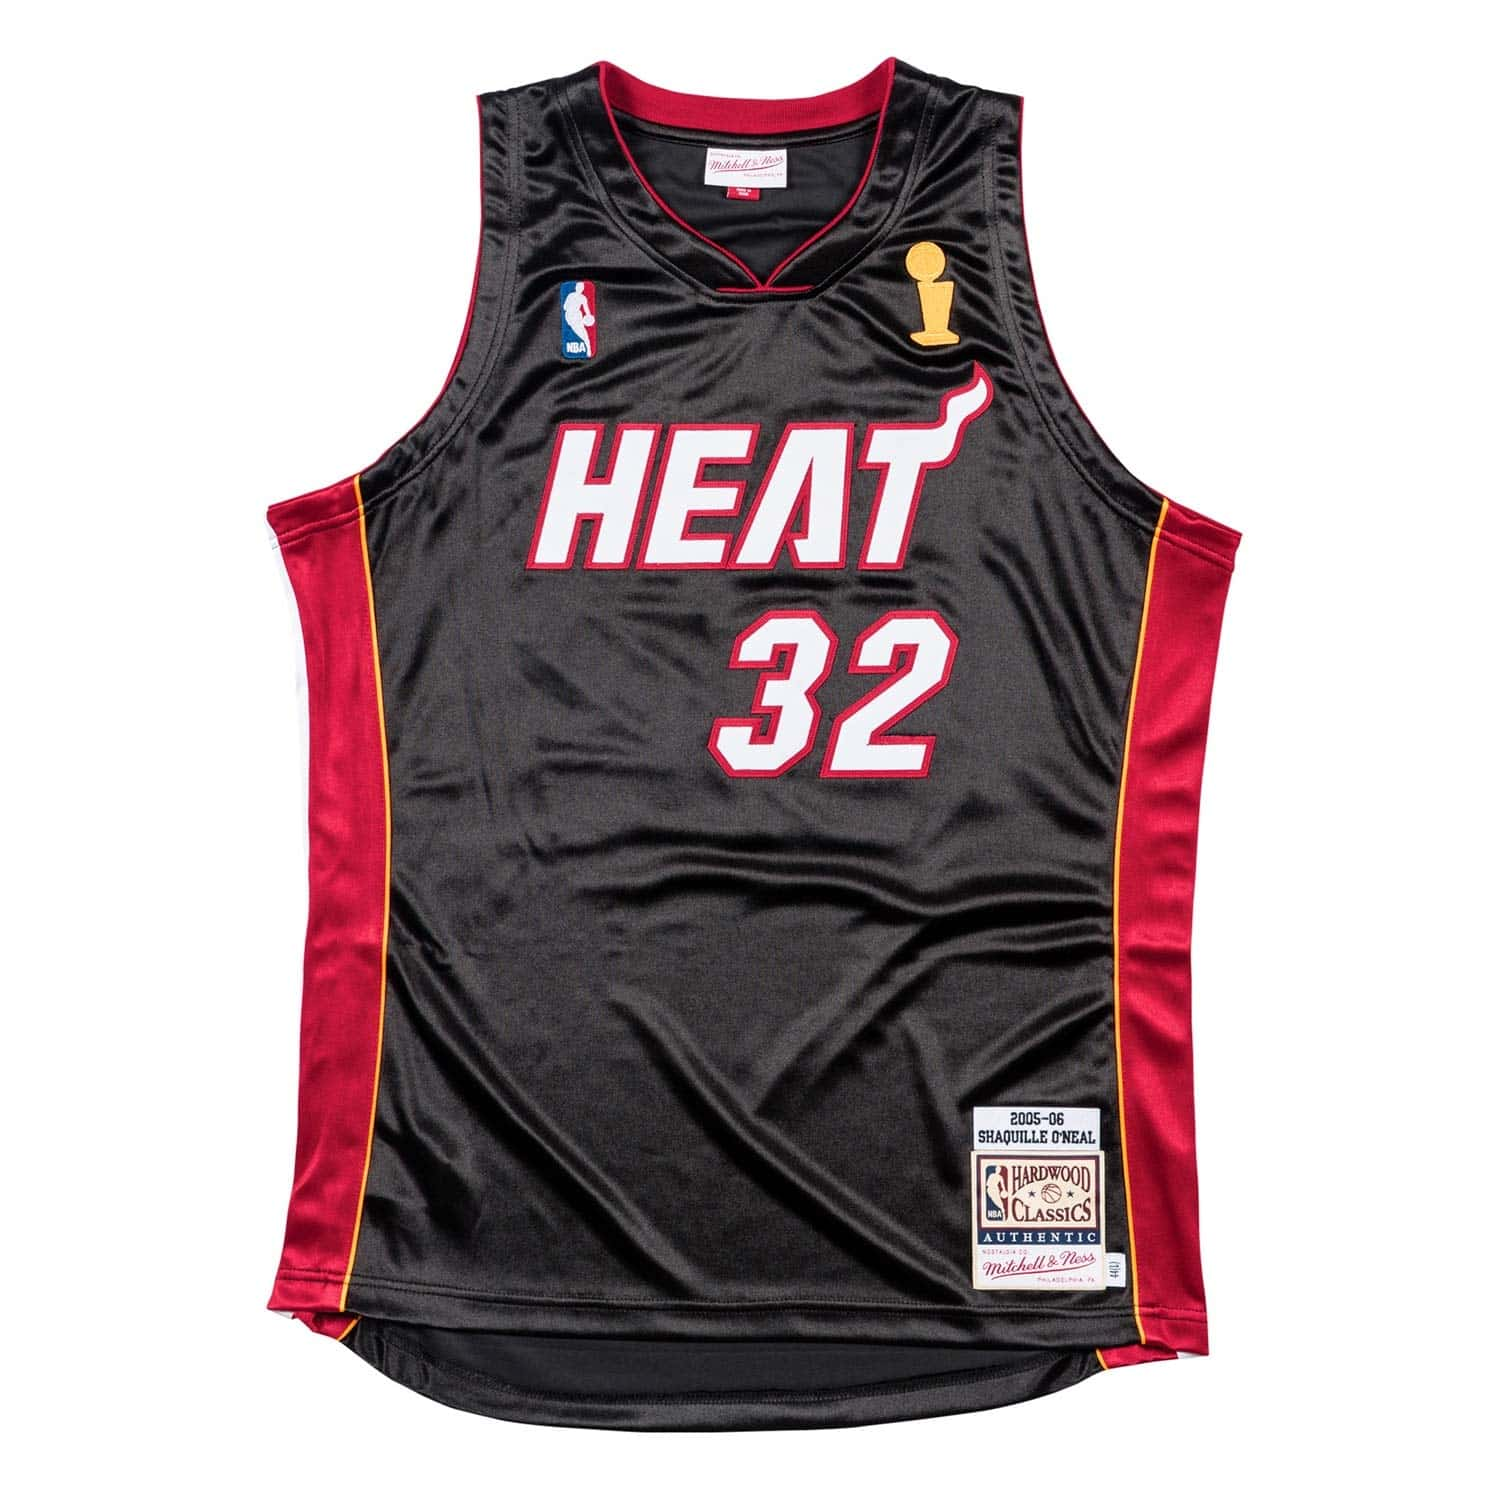 57a0406822a Mitchell   Ness Shaquille O Neal  32 Miami Heat 2005-06 Authentic NBA  Jersey Black